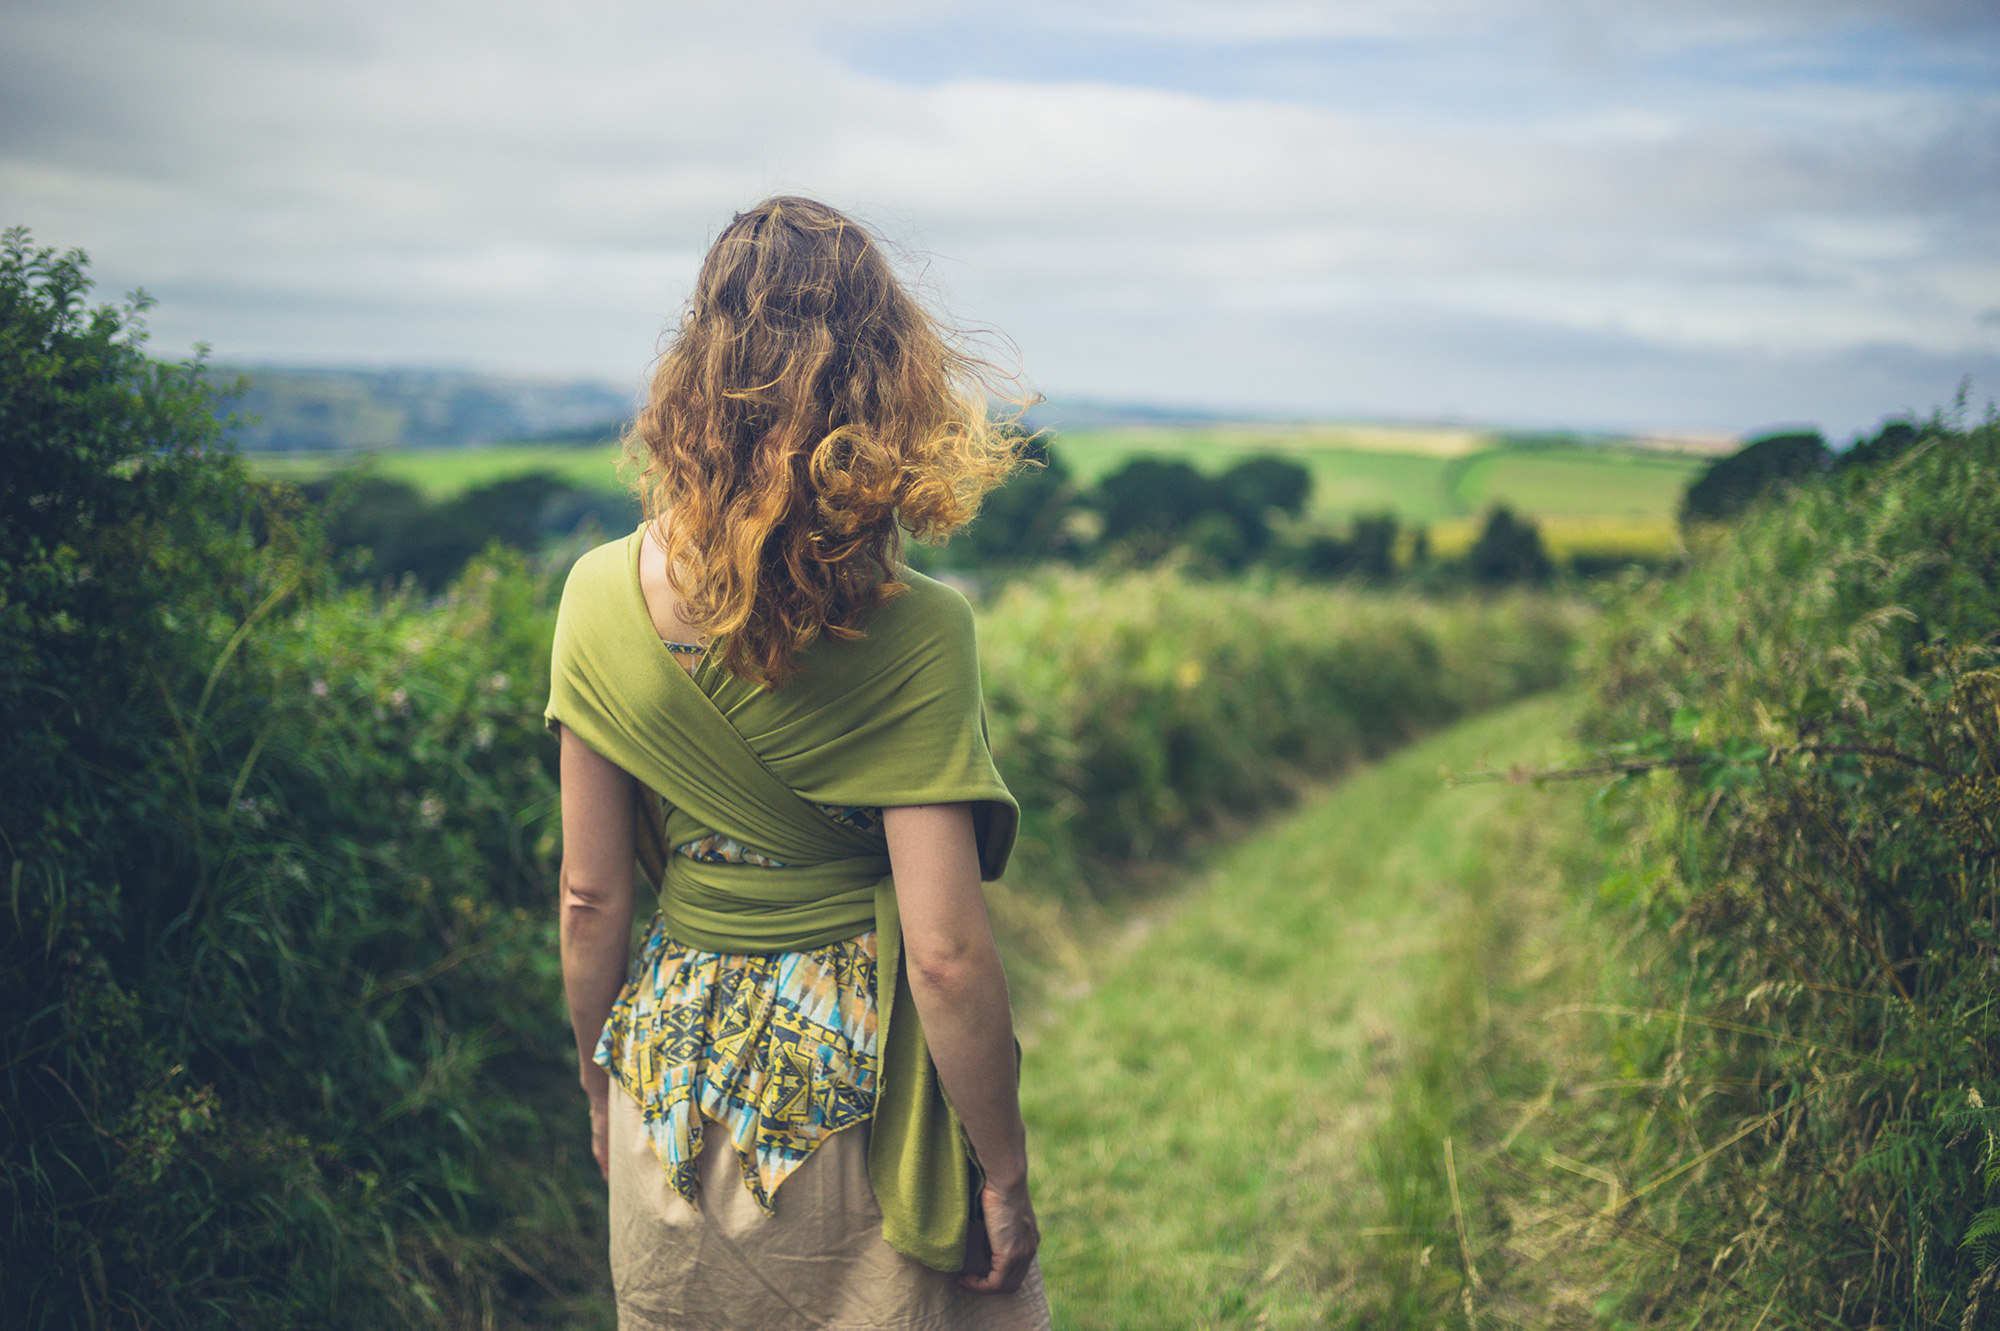 woman-practising-mindfulness-in-a-field.jpg